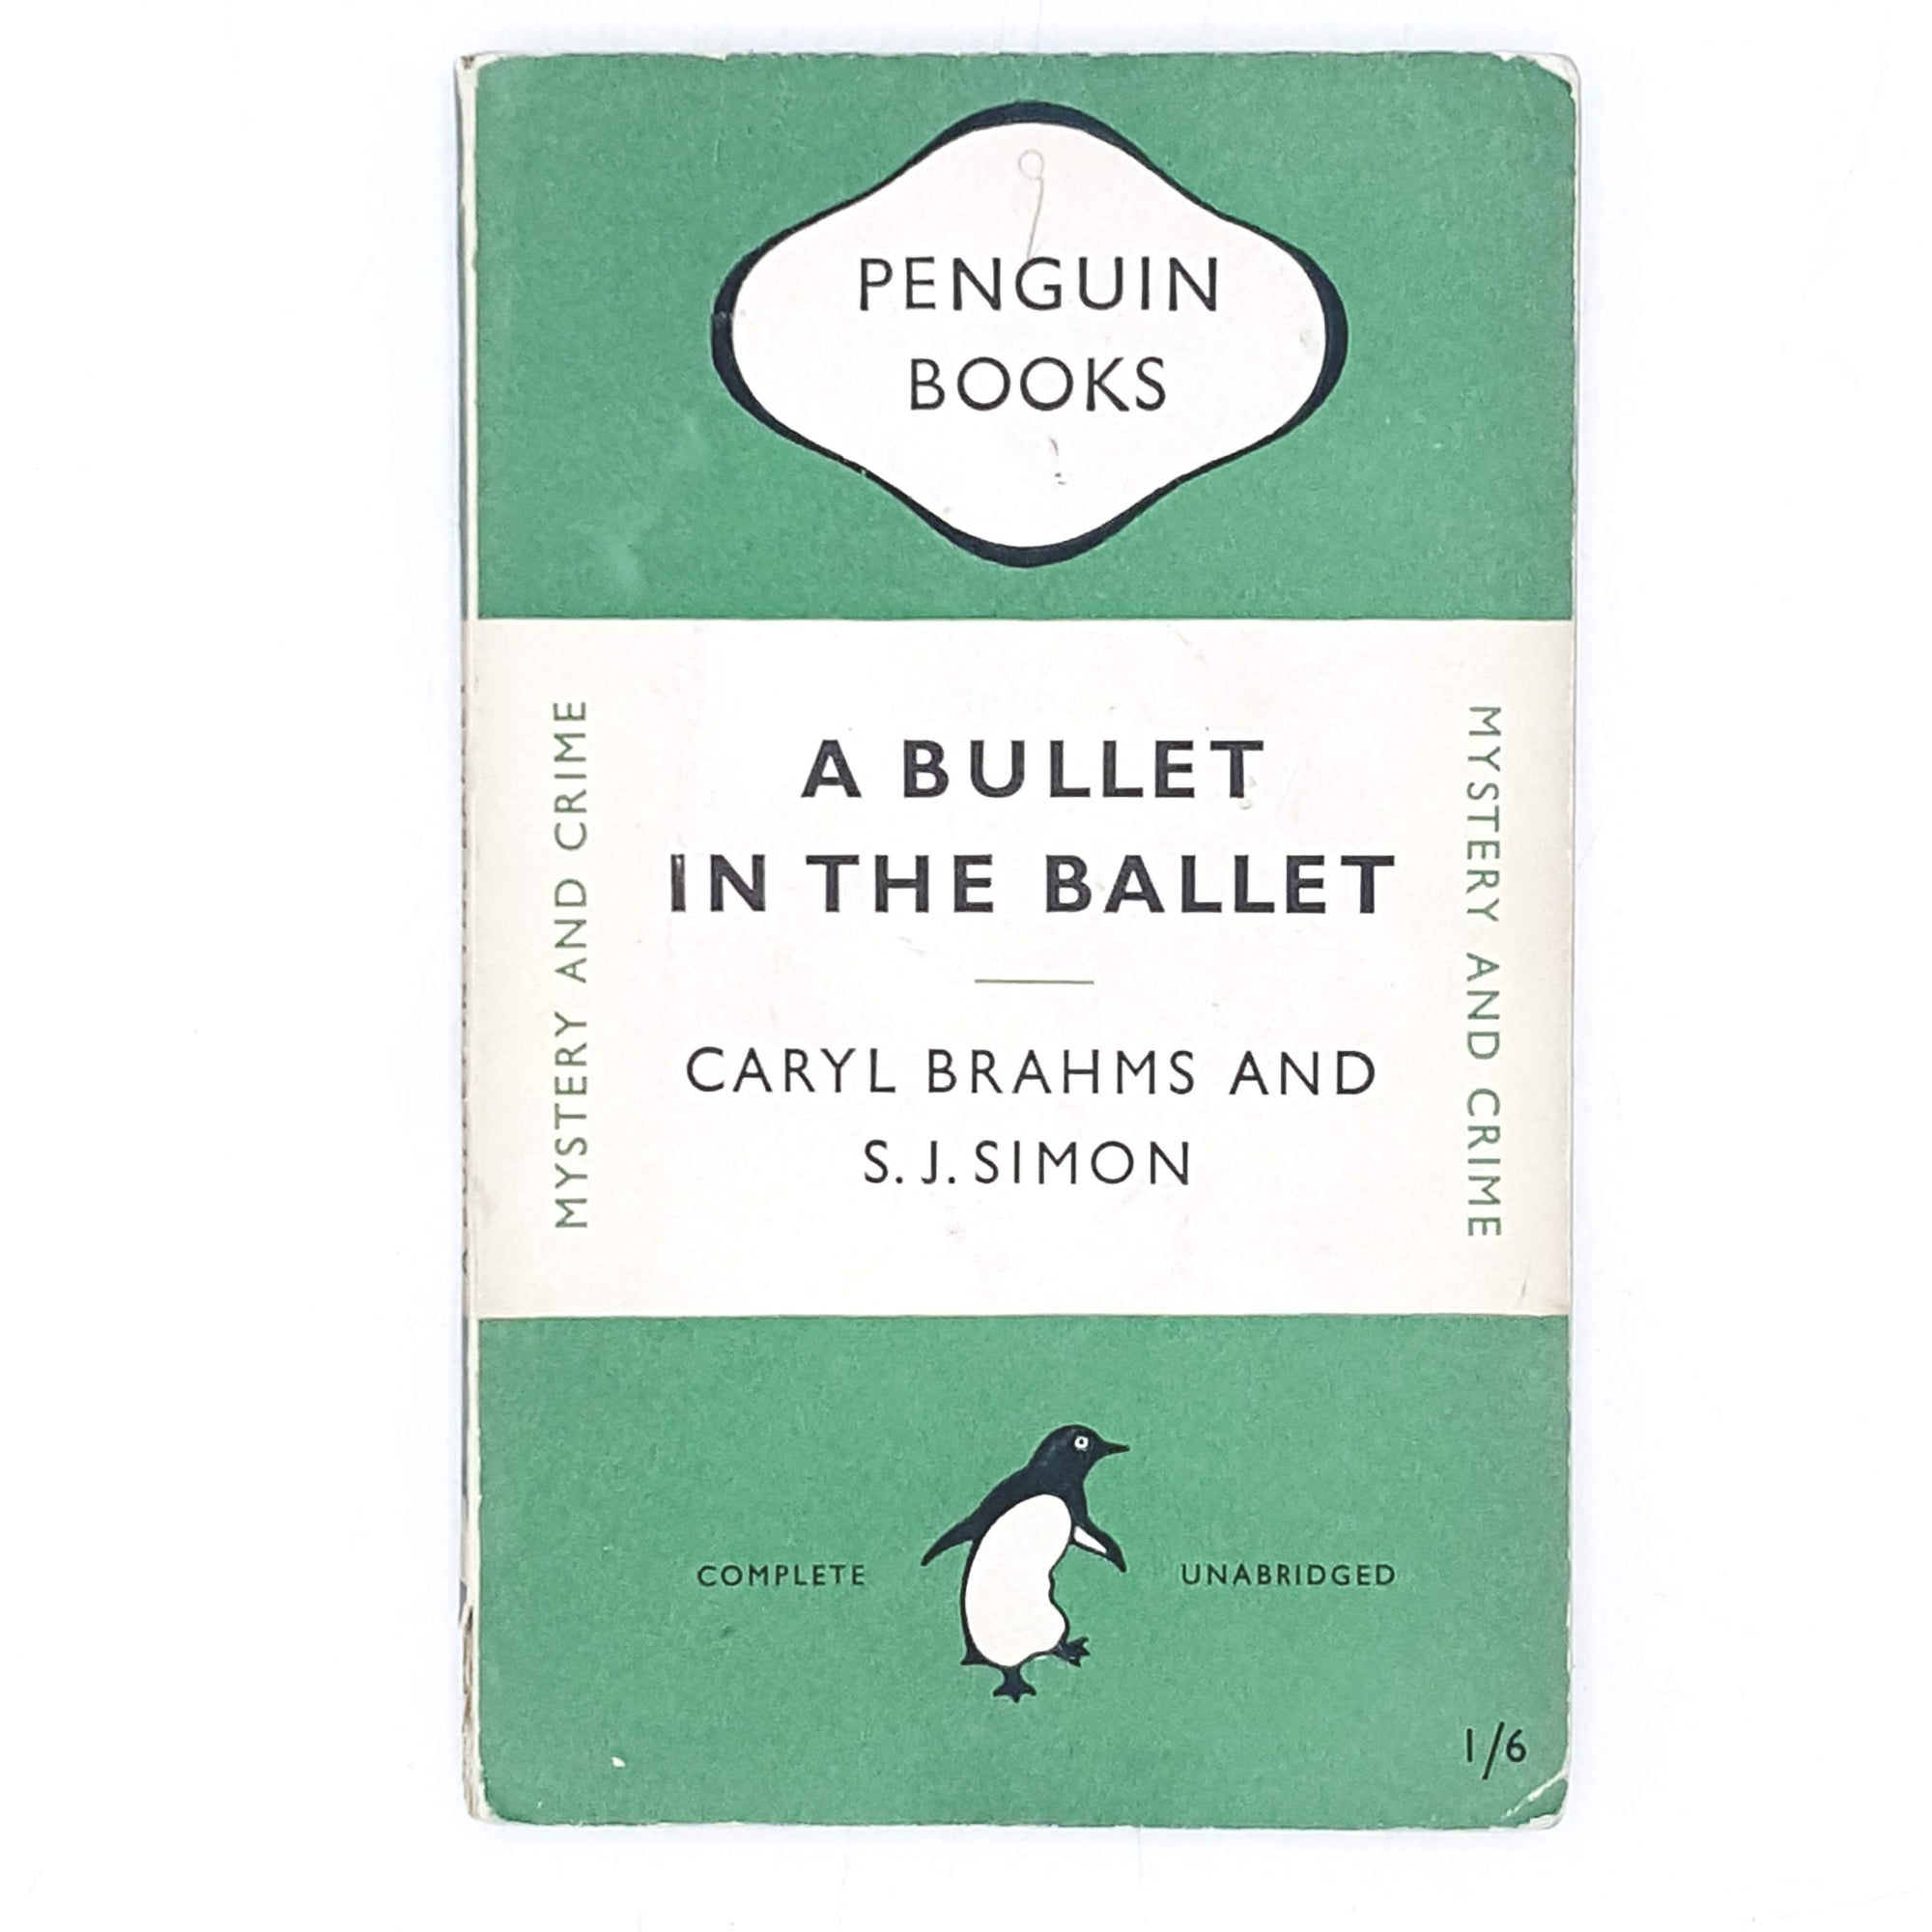 Vintage Penguin Crime A Bullet in the Ballet by Caryl BNrahms and S. J. Simon 1949